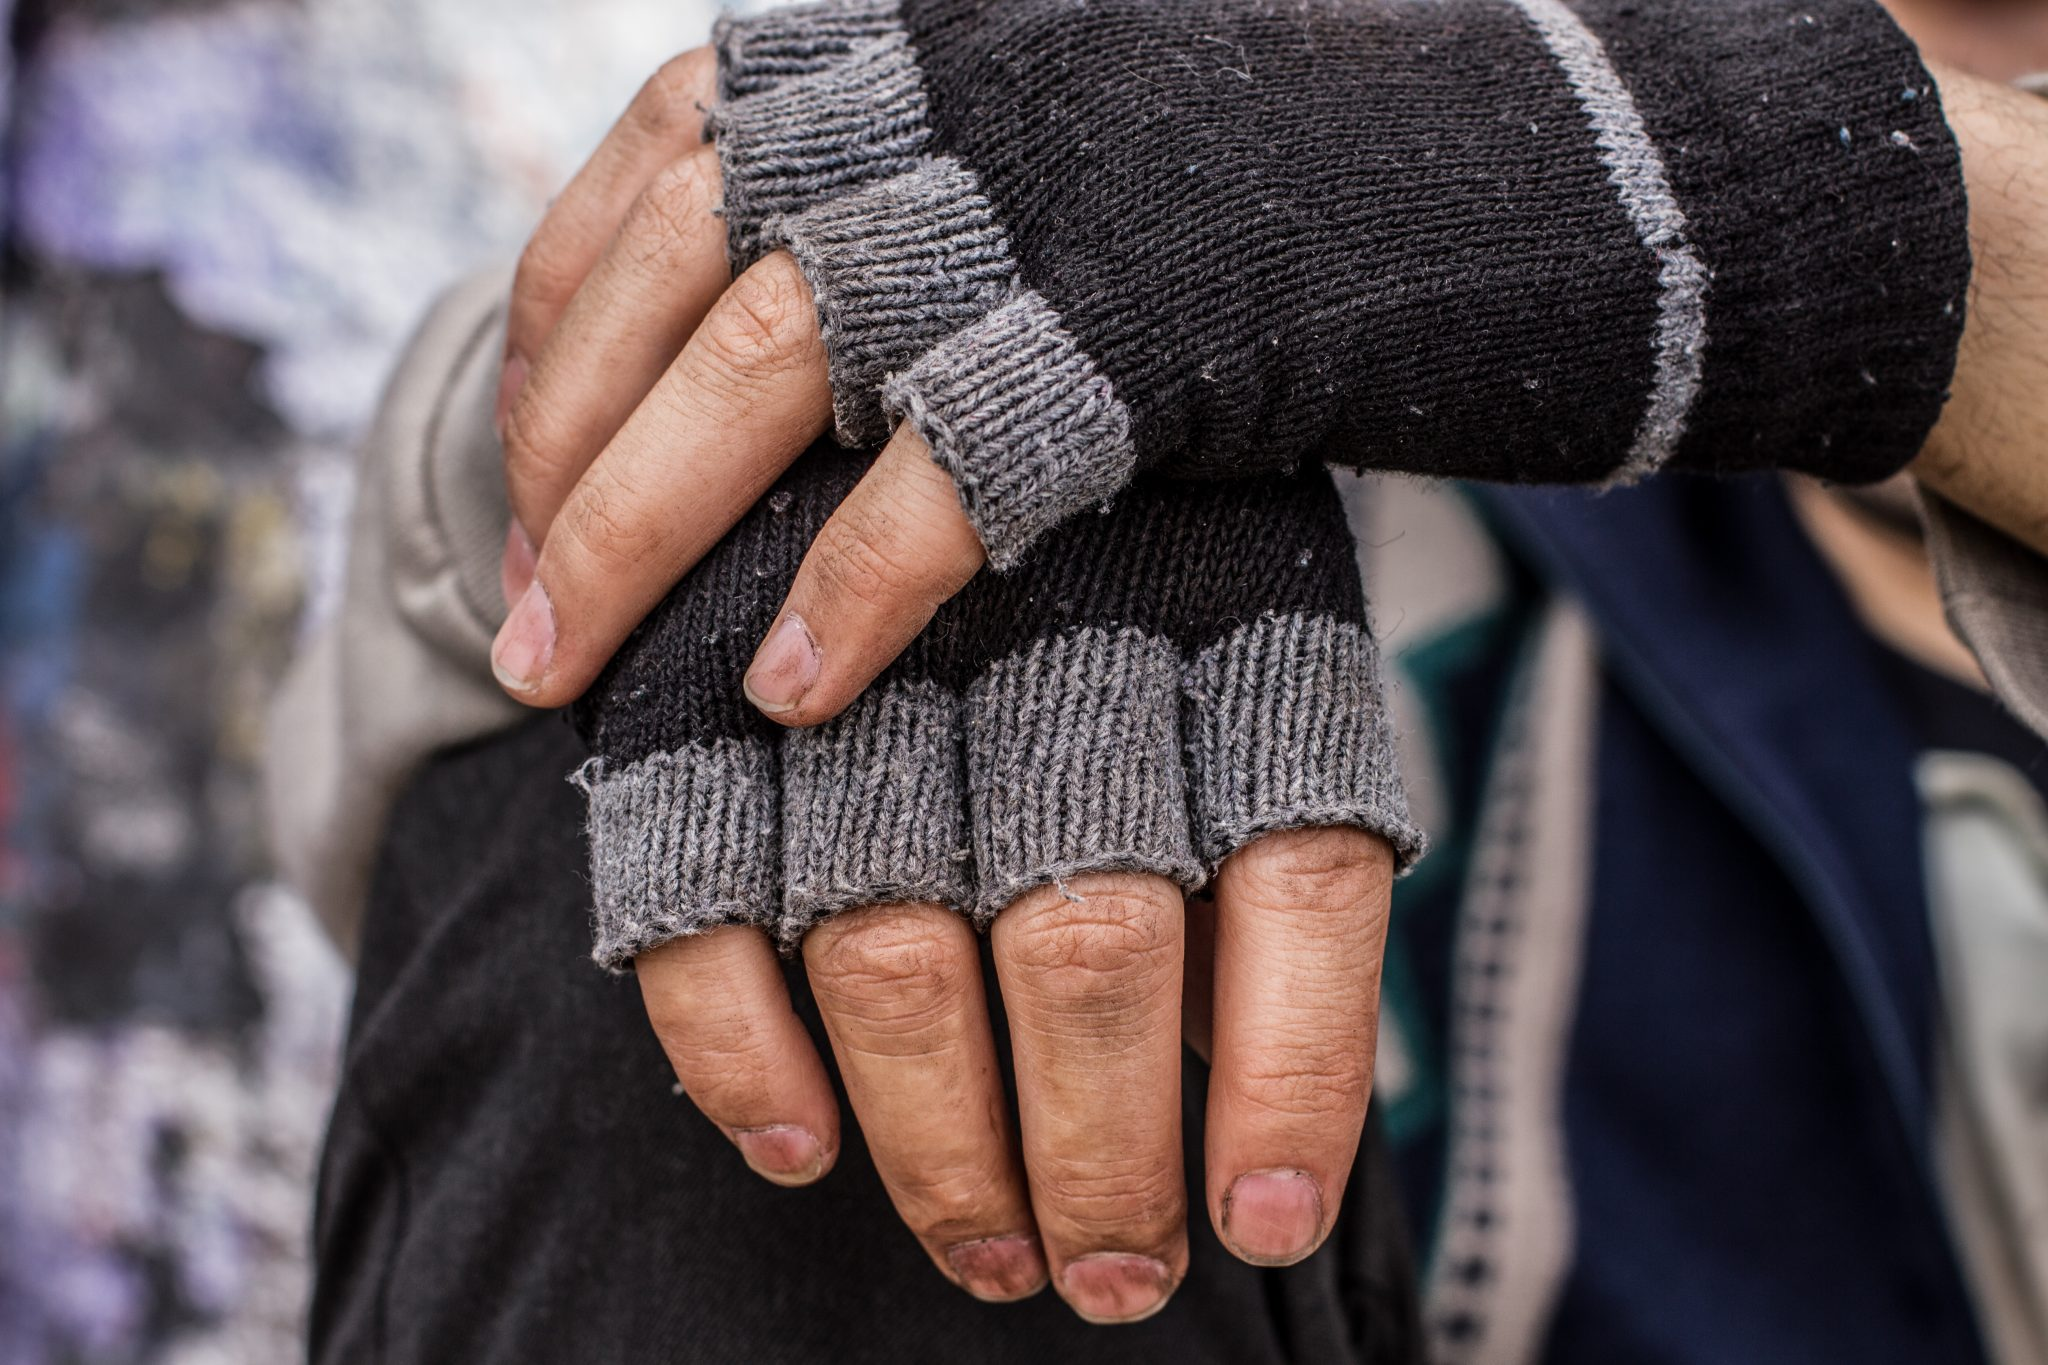 Close up photo of a man's dirt-covered hands wearing fingerless gloves.